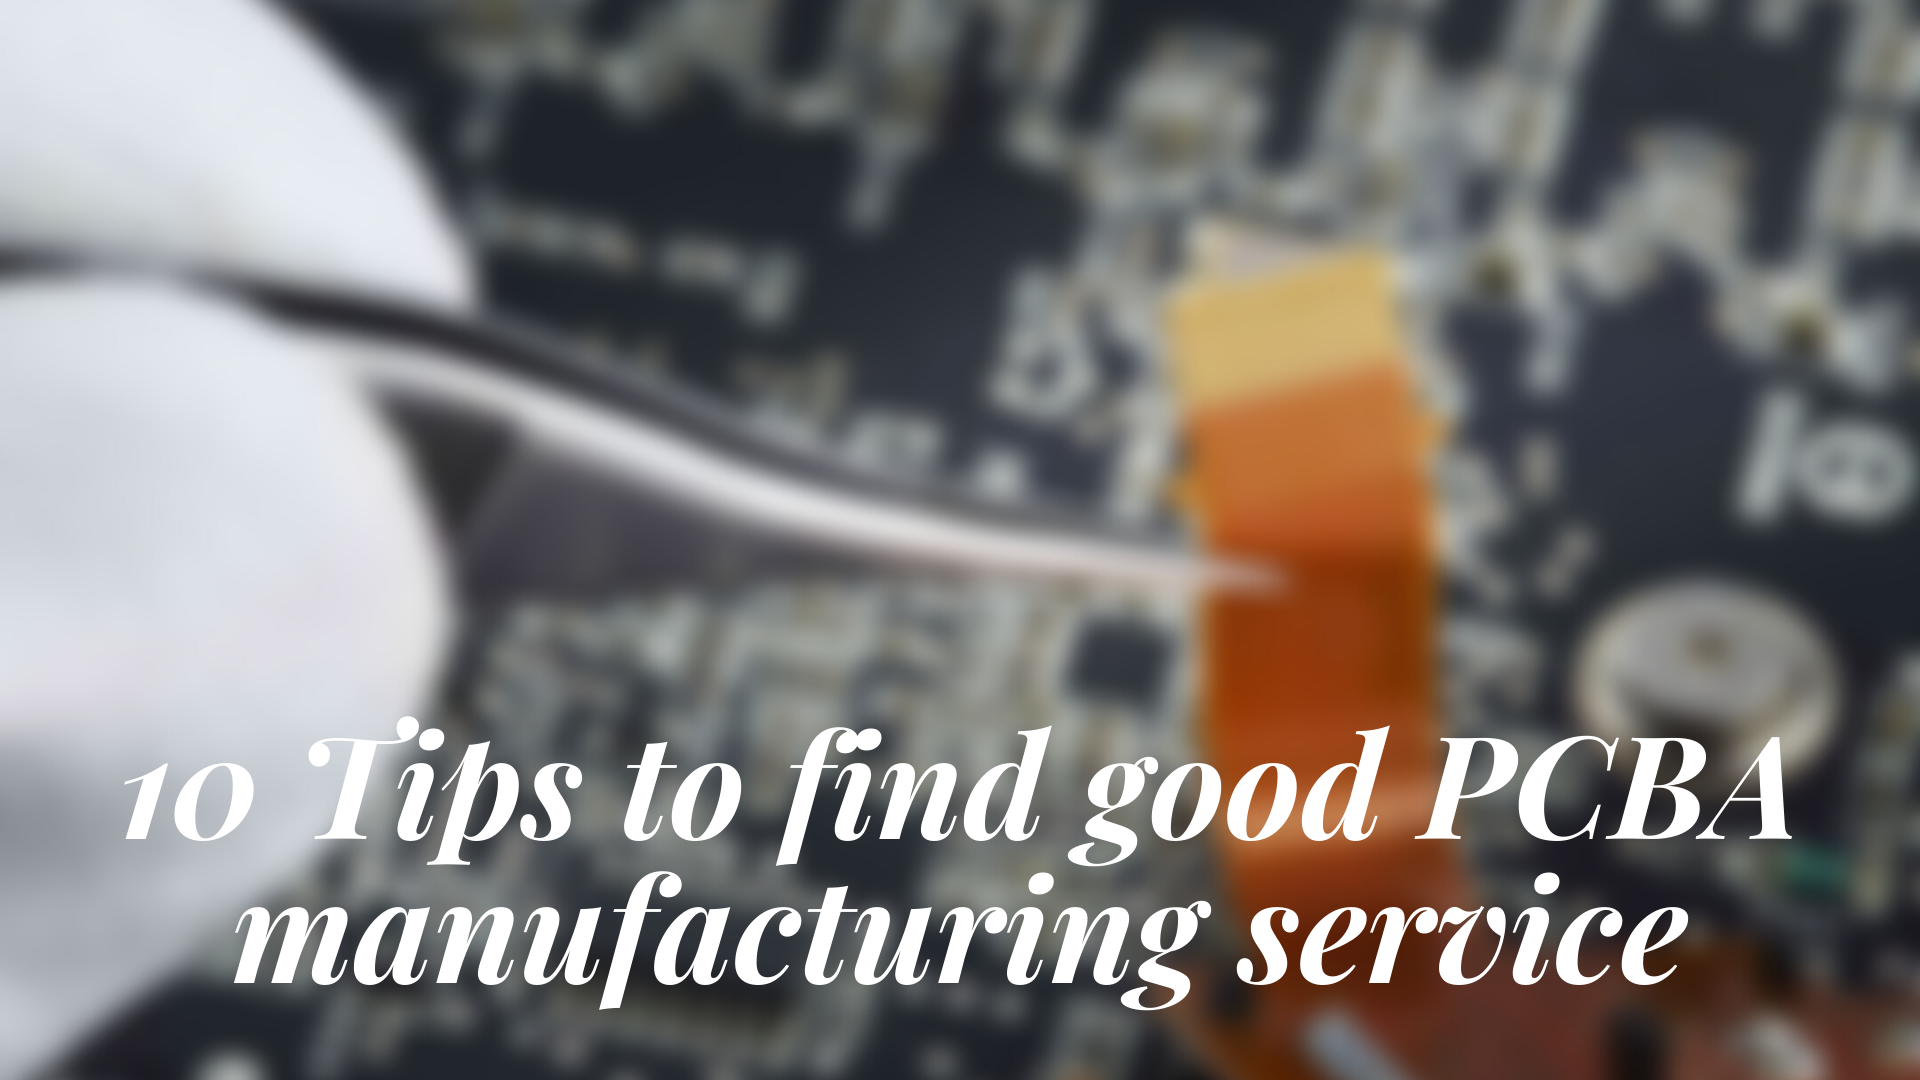 10 Tips to find good PCBA manufacturing service